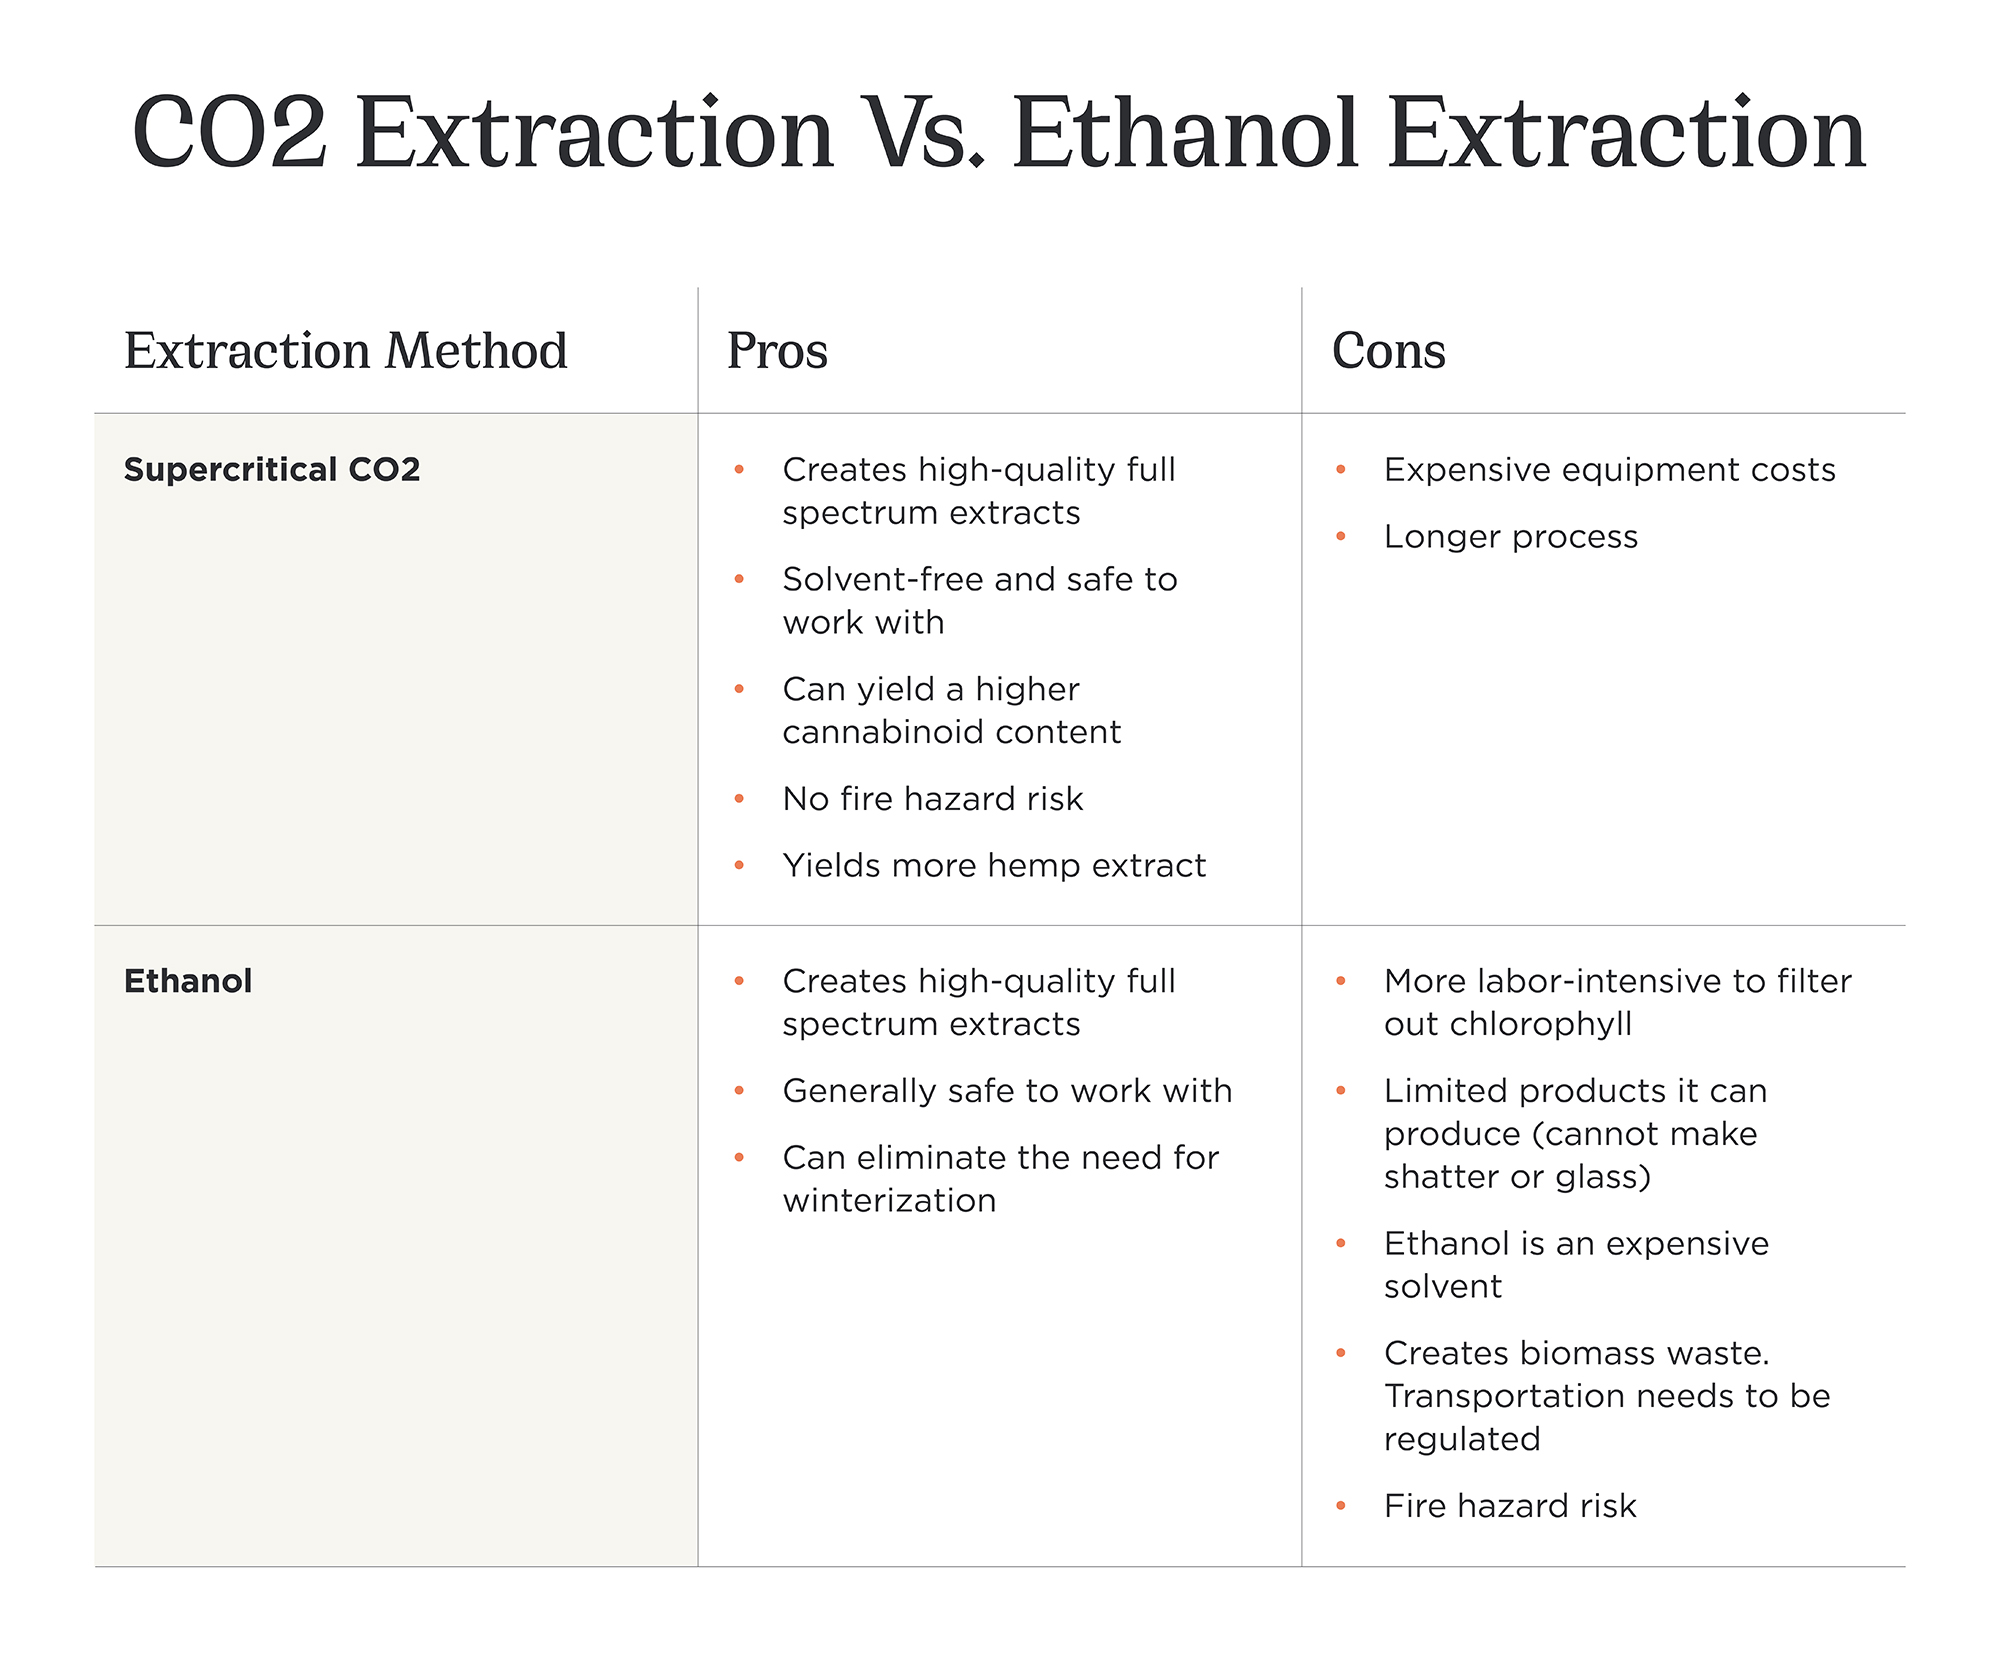 Is Ethanol Extraction Better Than CO2?